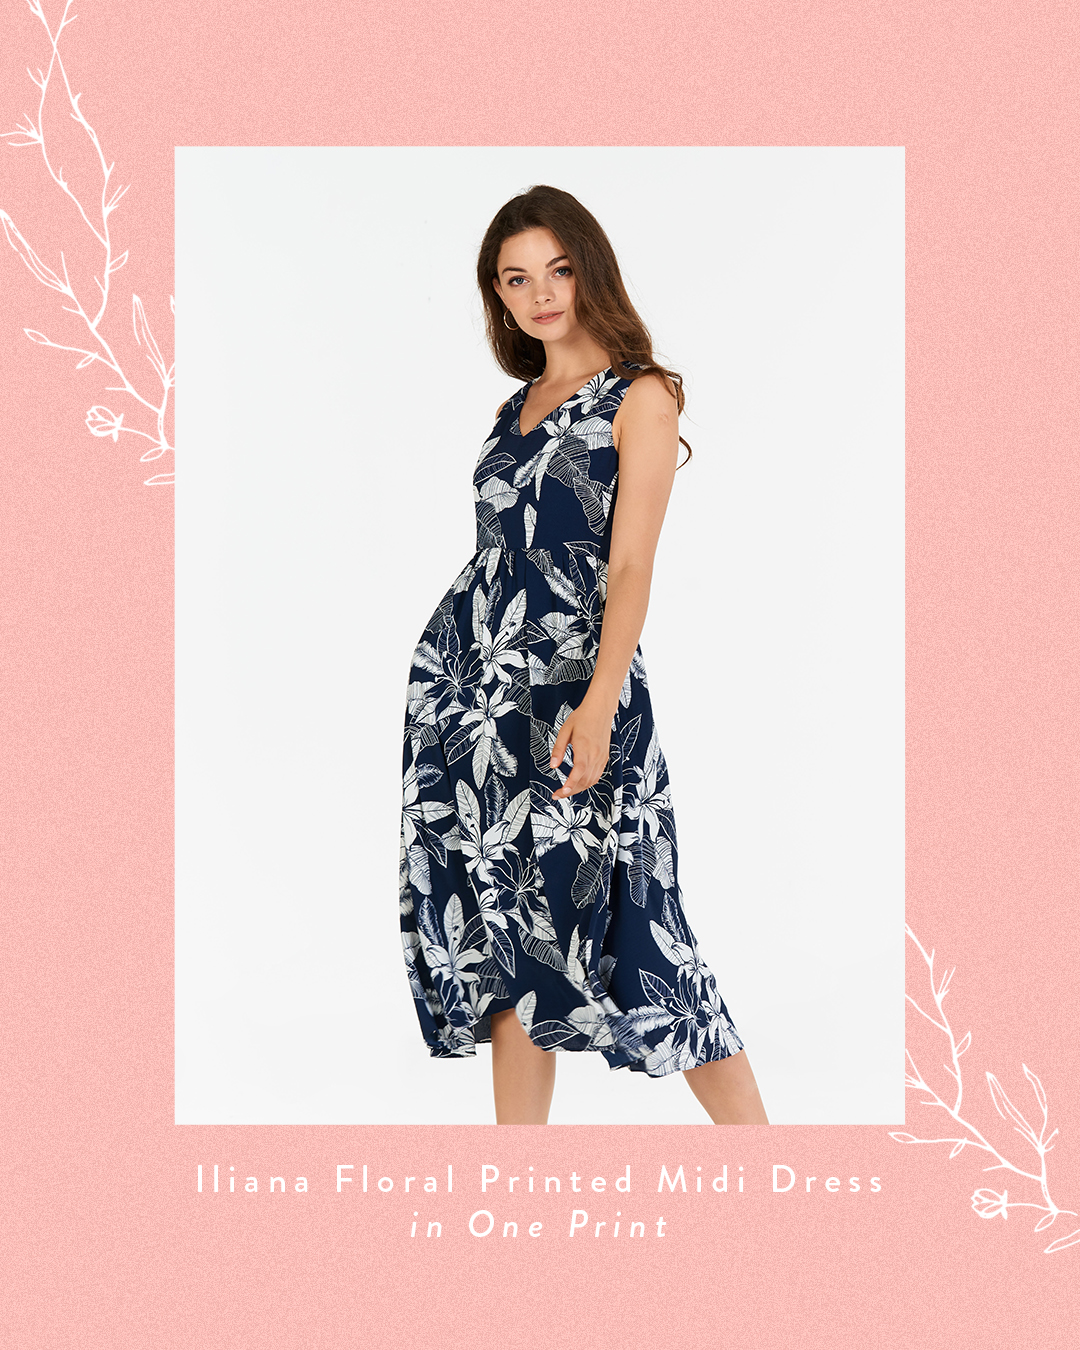 Iliana Floral Printed Midi Dress